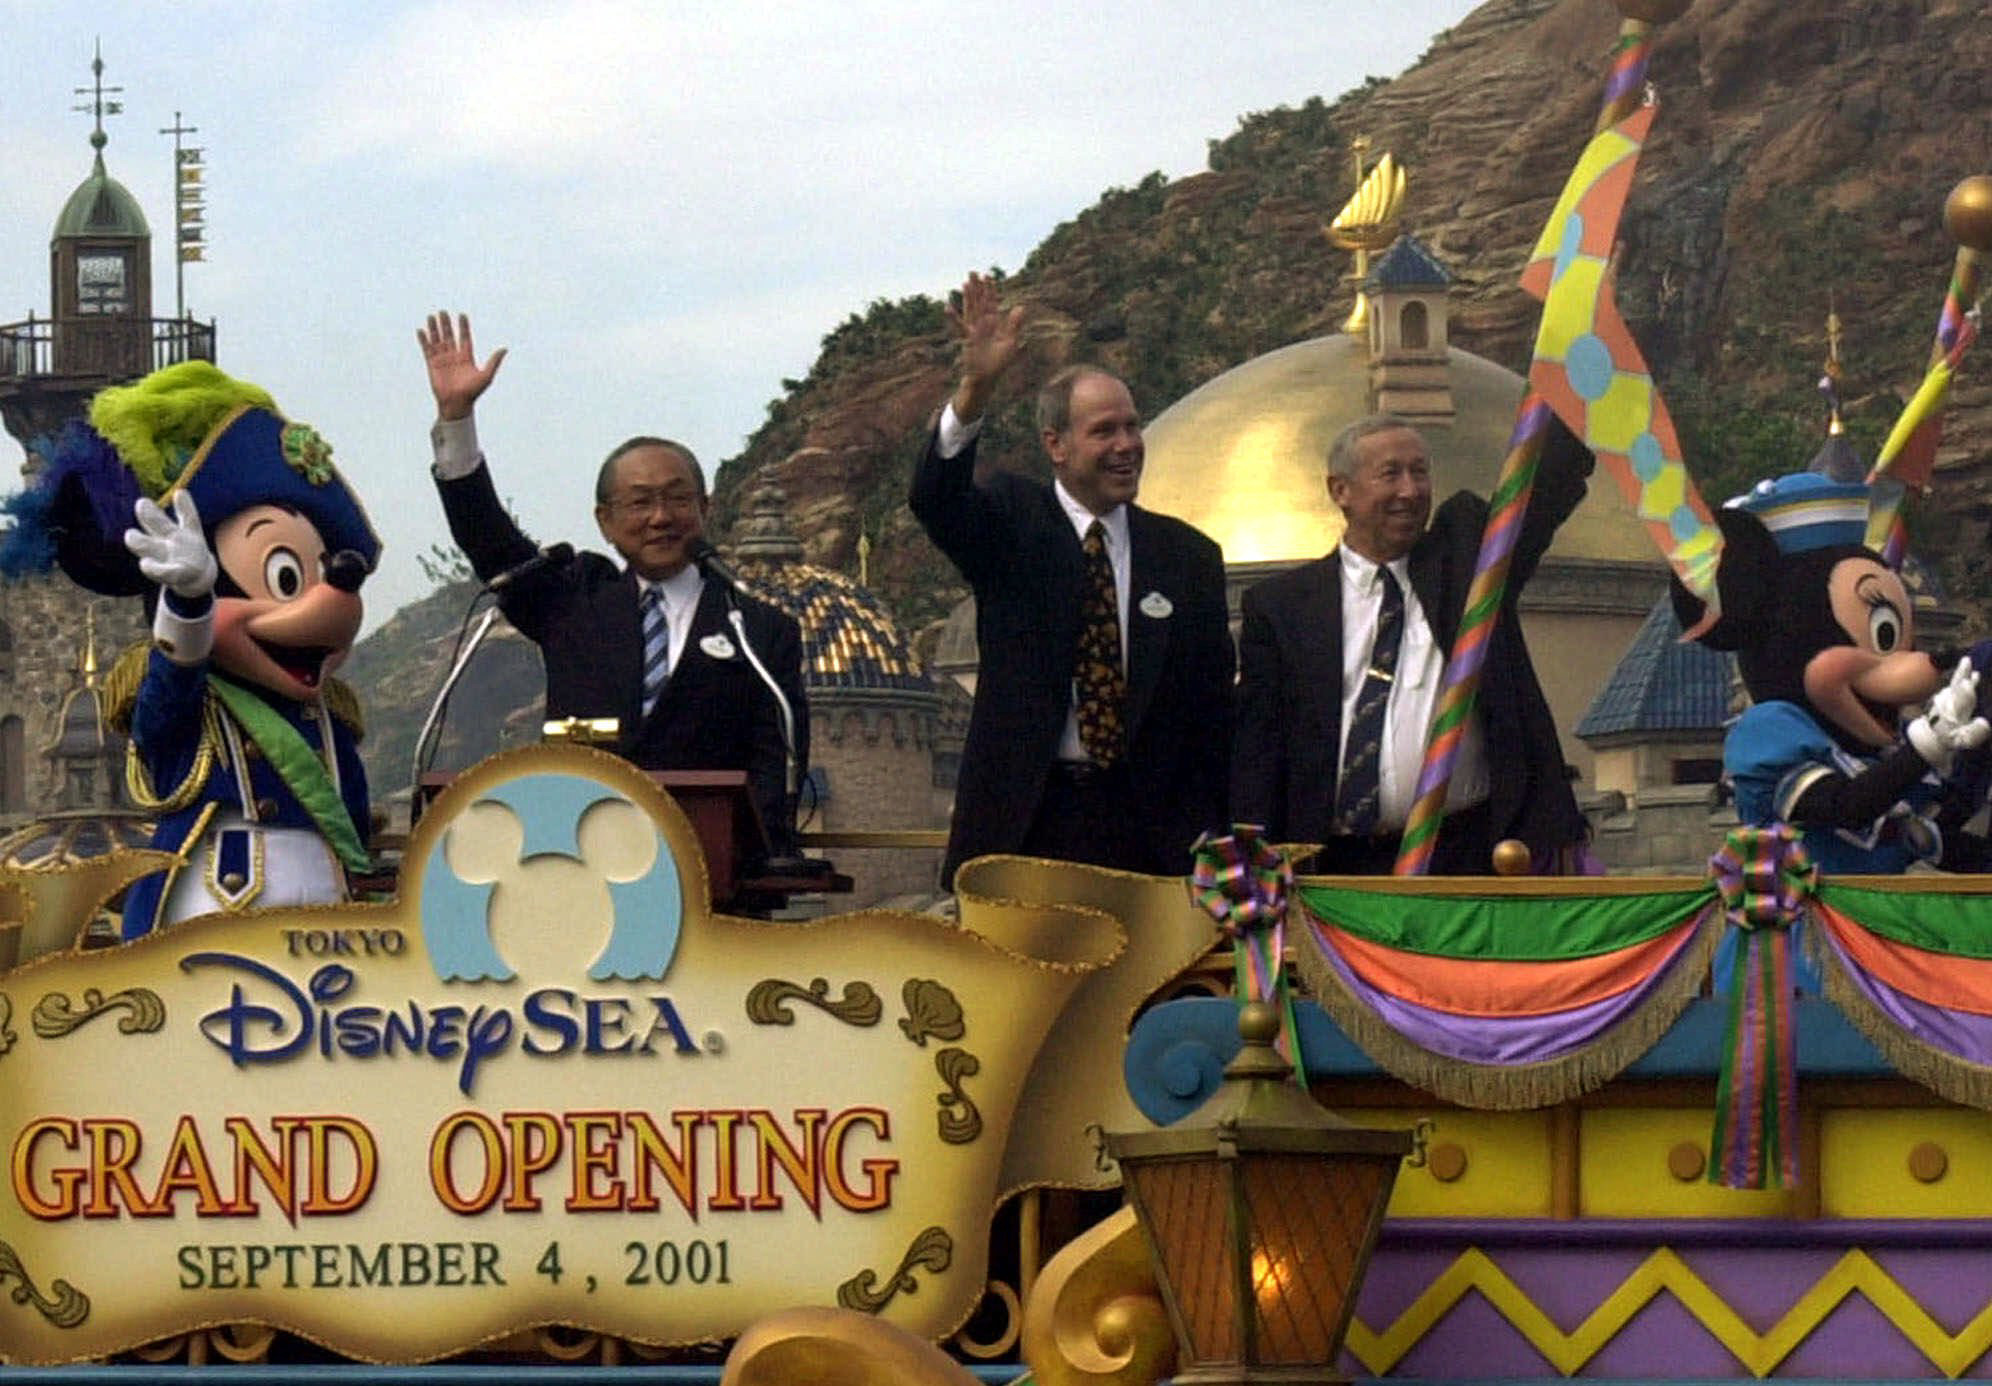 Tokyo Disney owner said to be planning major expansion